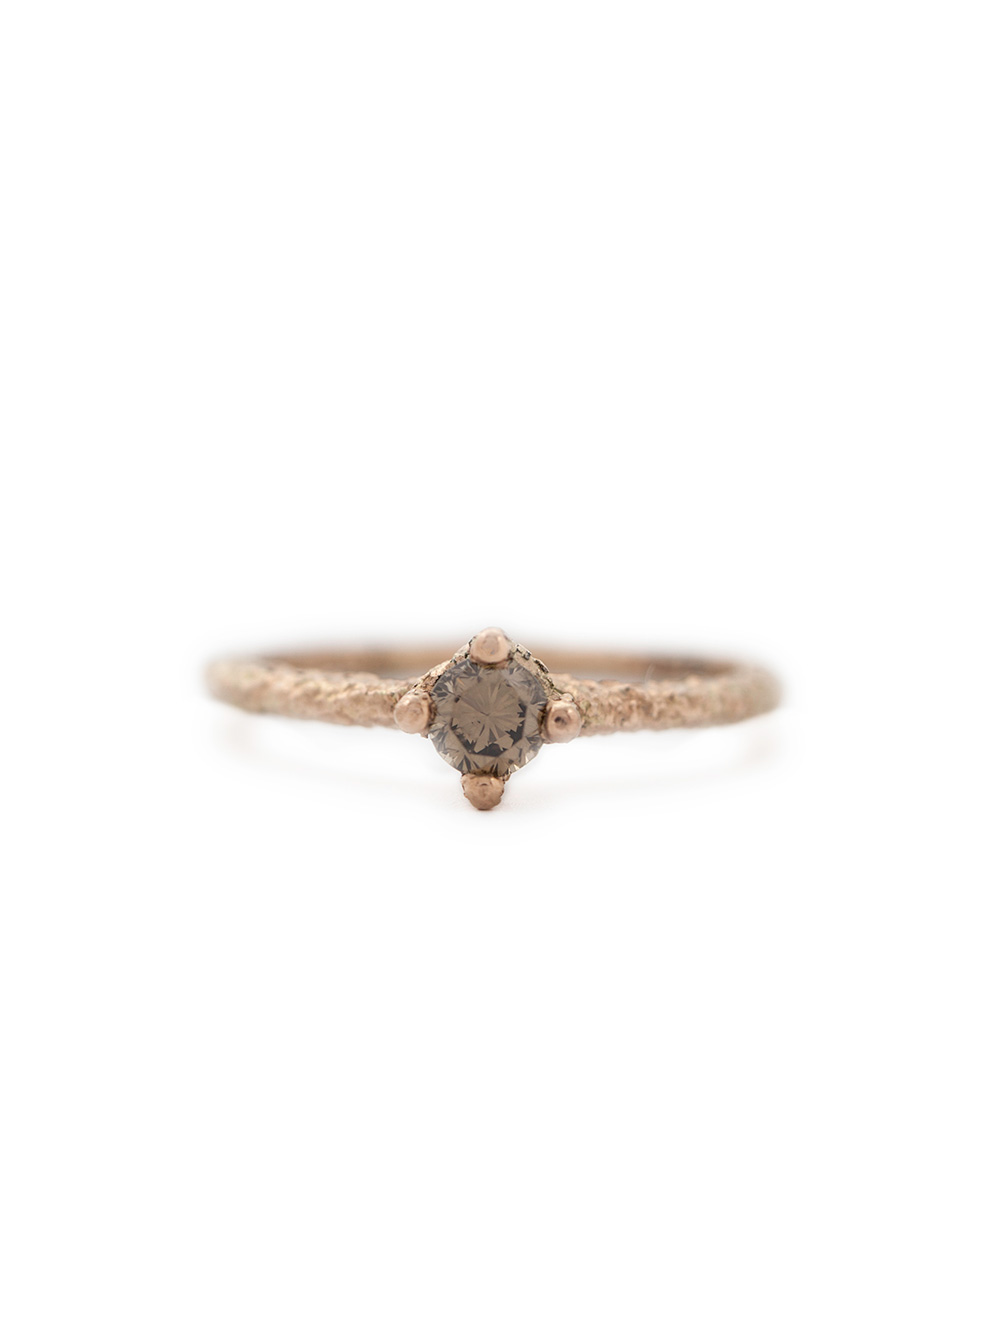 Cognac diamond ring in rose gold